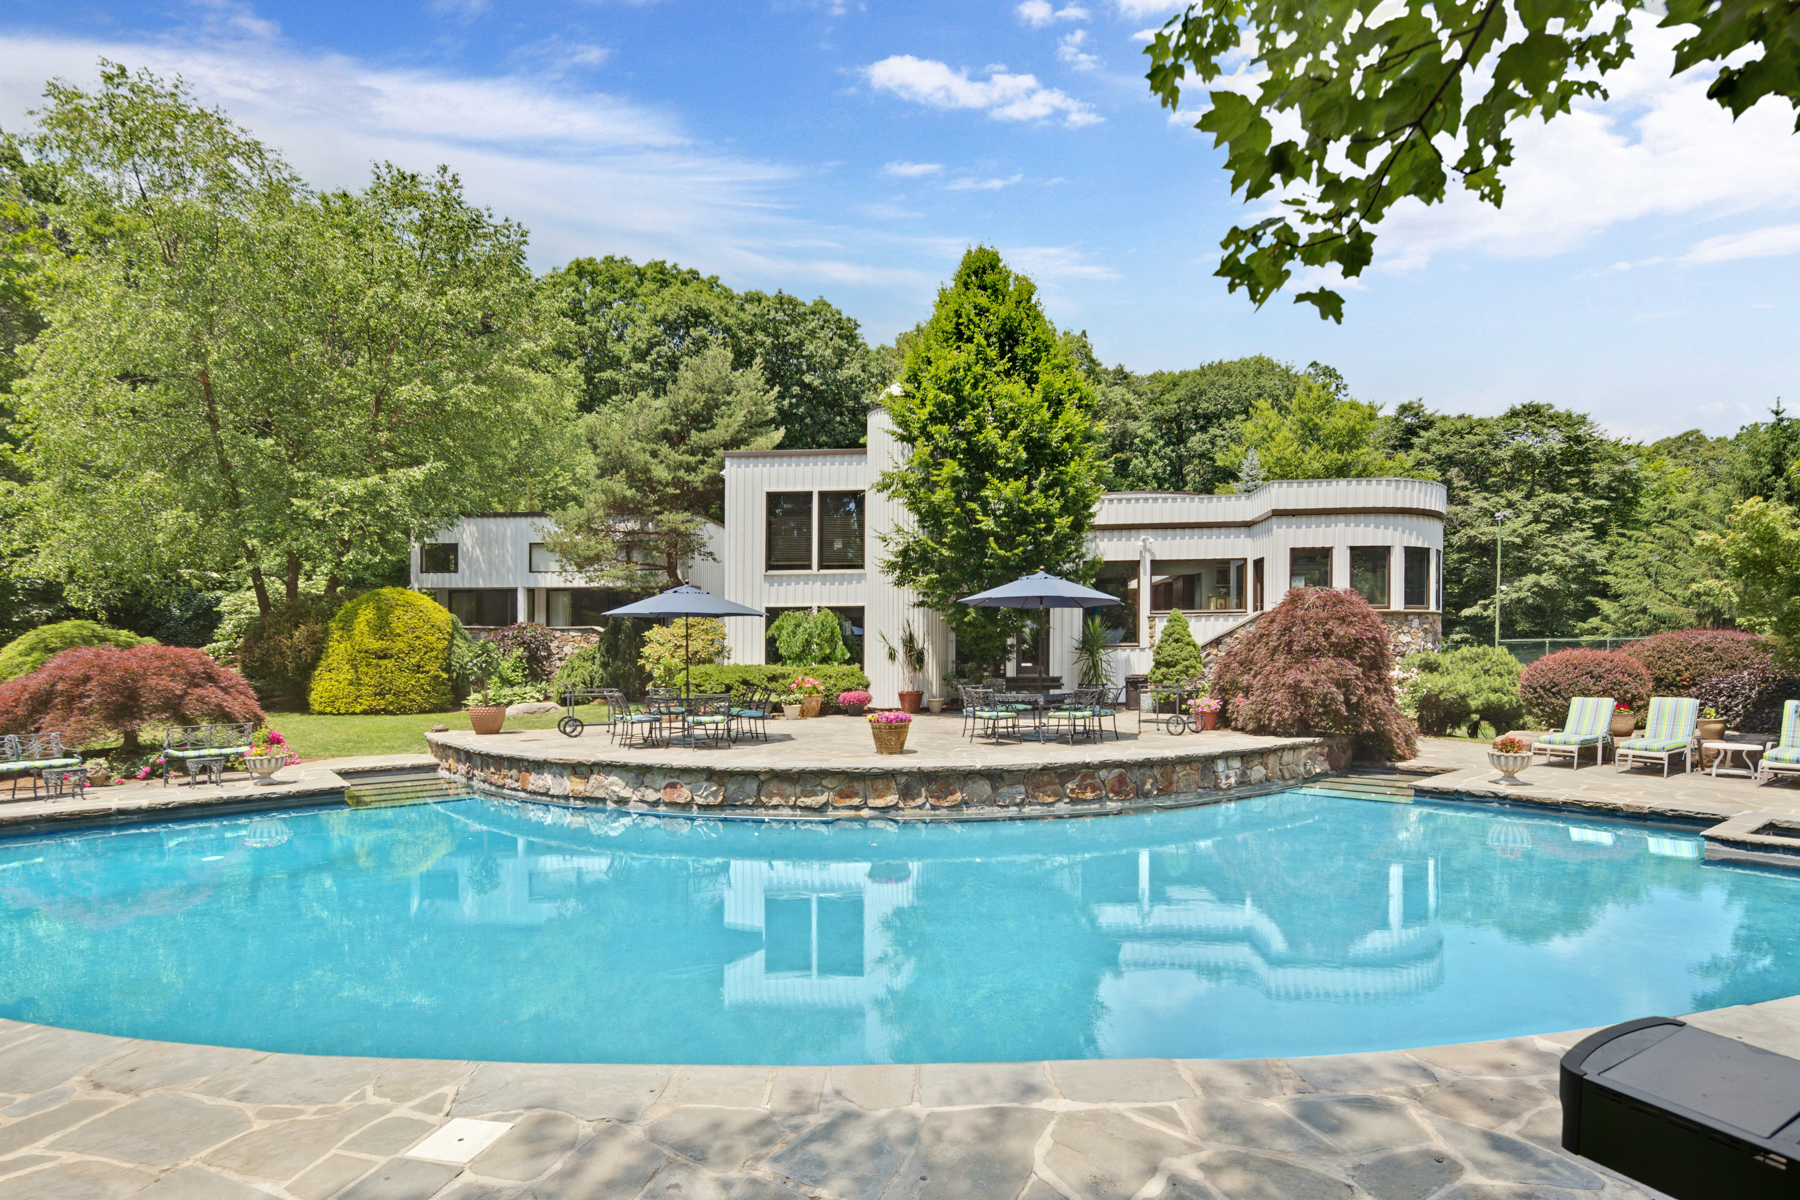 Single Family Home for Sale at Exceptional Custom Contemporary 289-2 Mt Harmony Road Bernardsville, New Jersey, 07924 United States